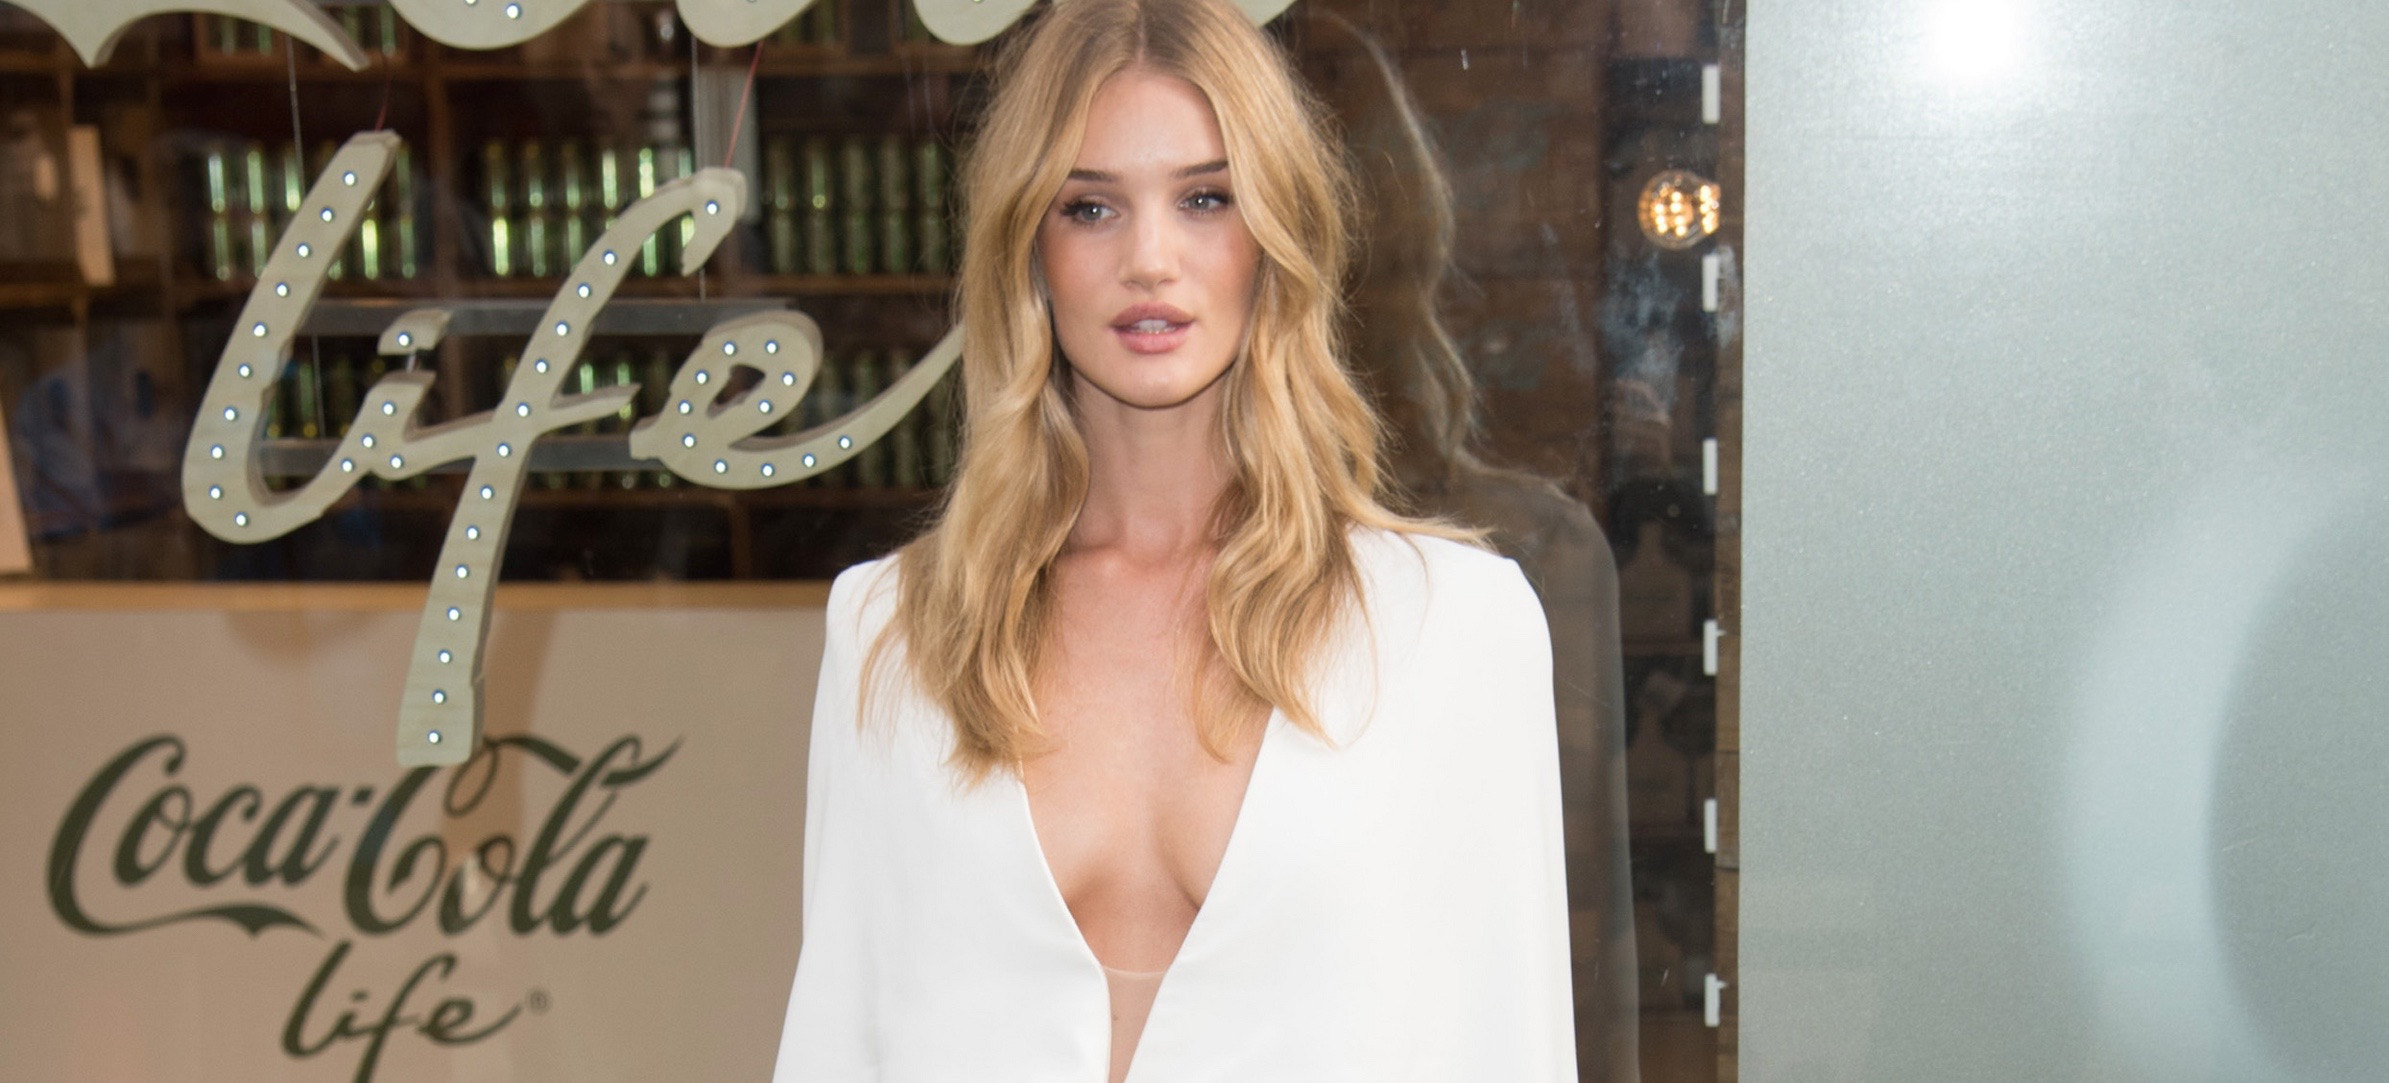 The Best Cuts for Girls Who Hate Styling